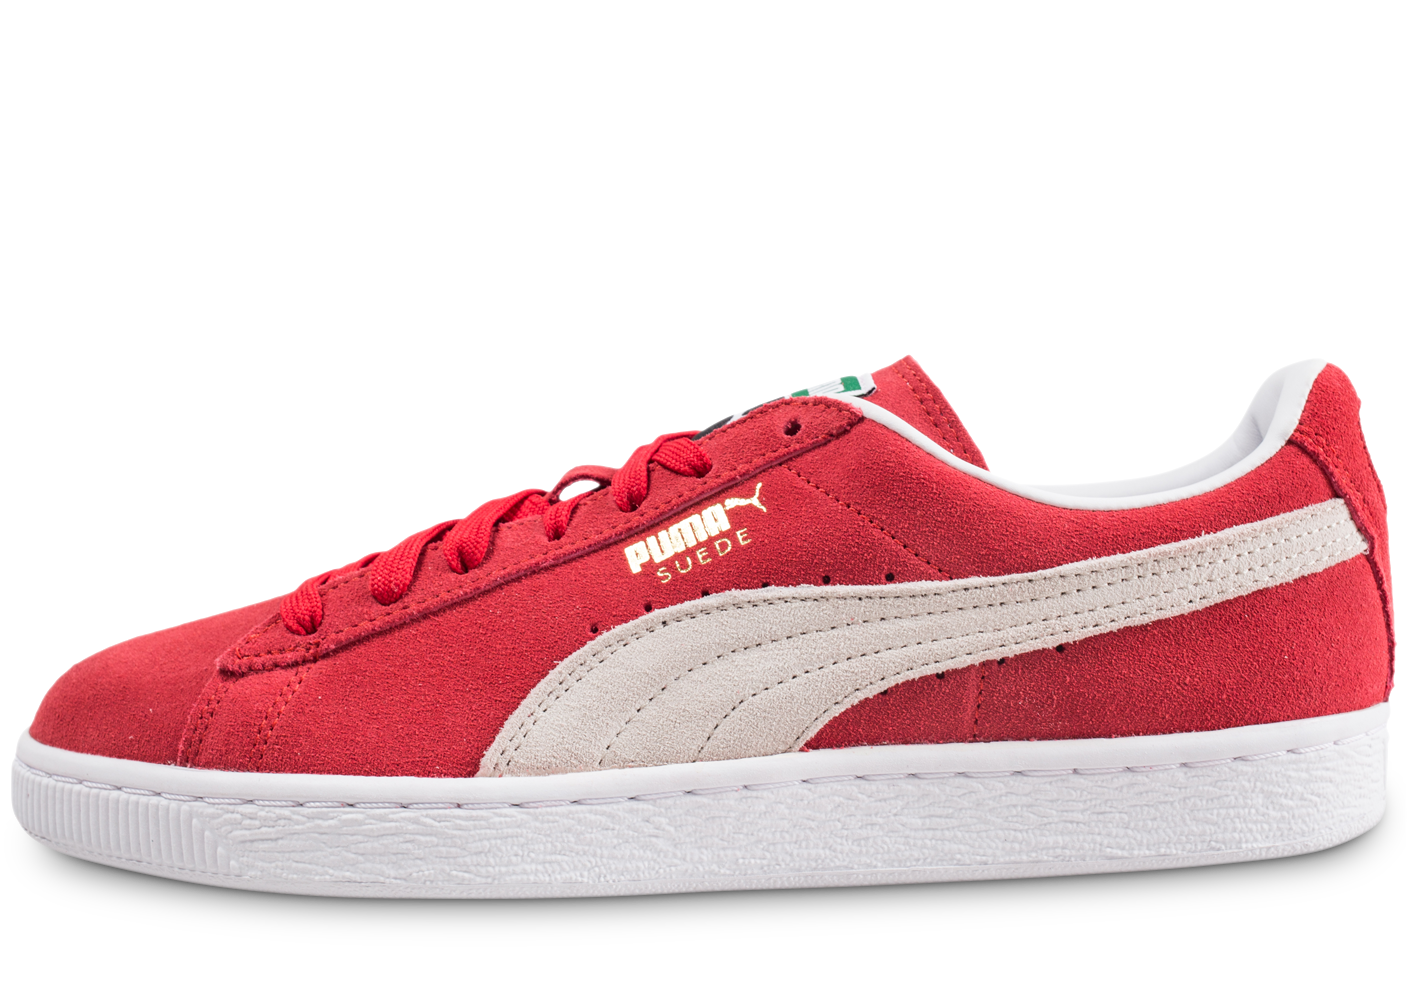 Puma homme suede classic rouge tennis